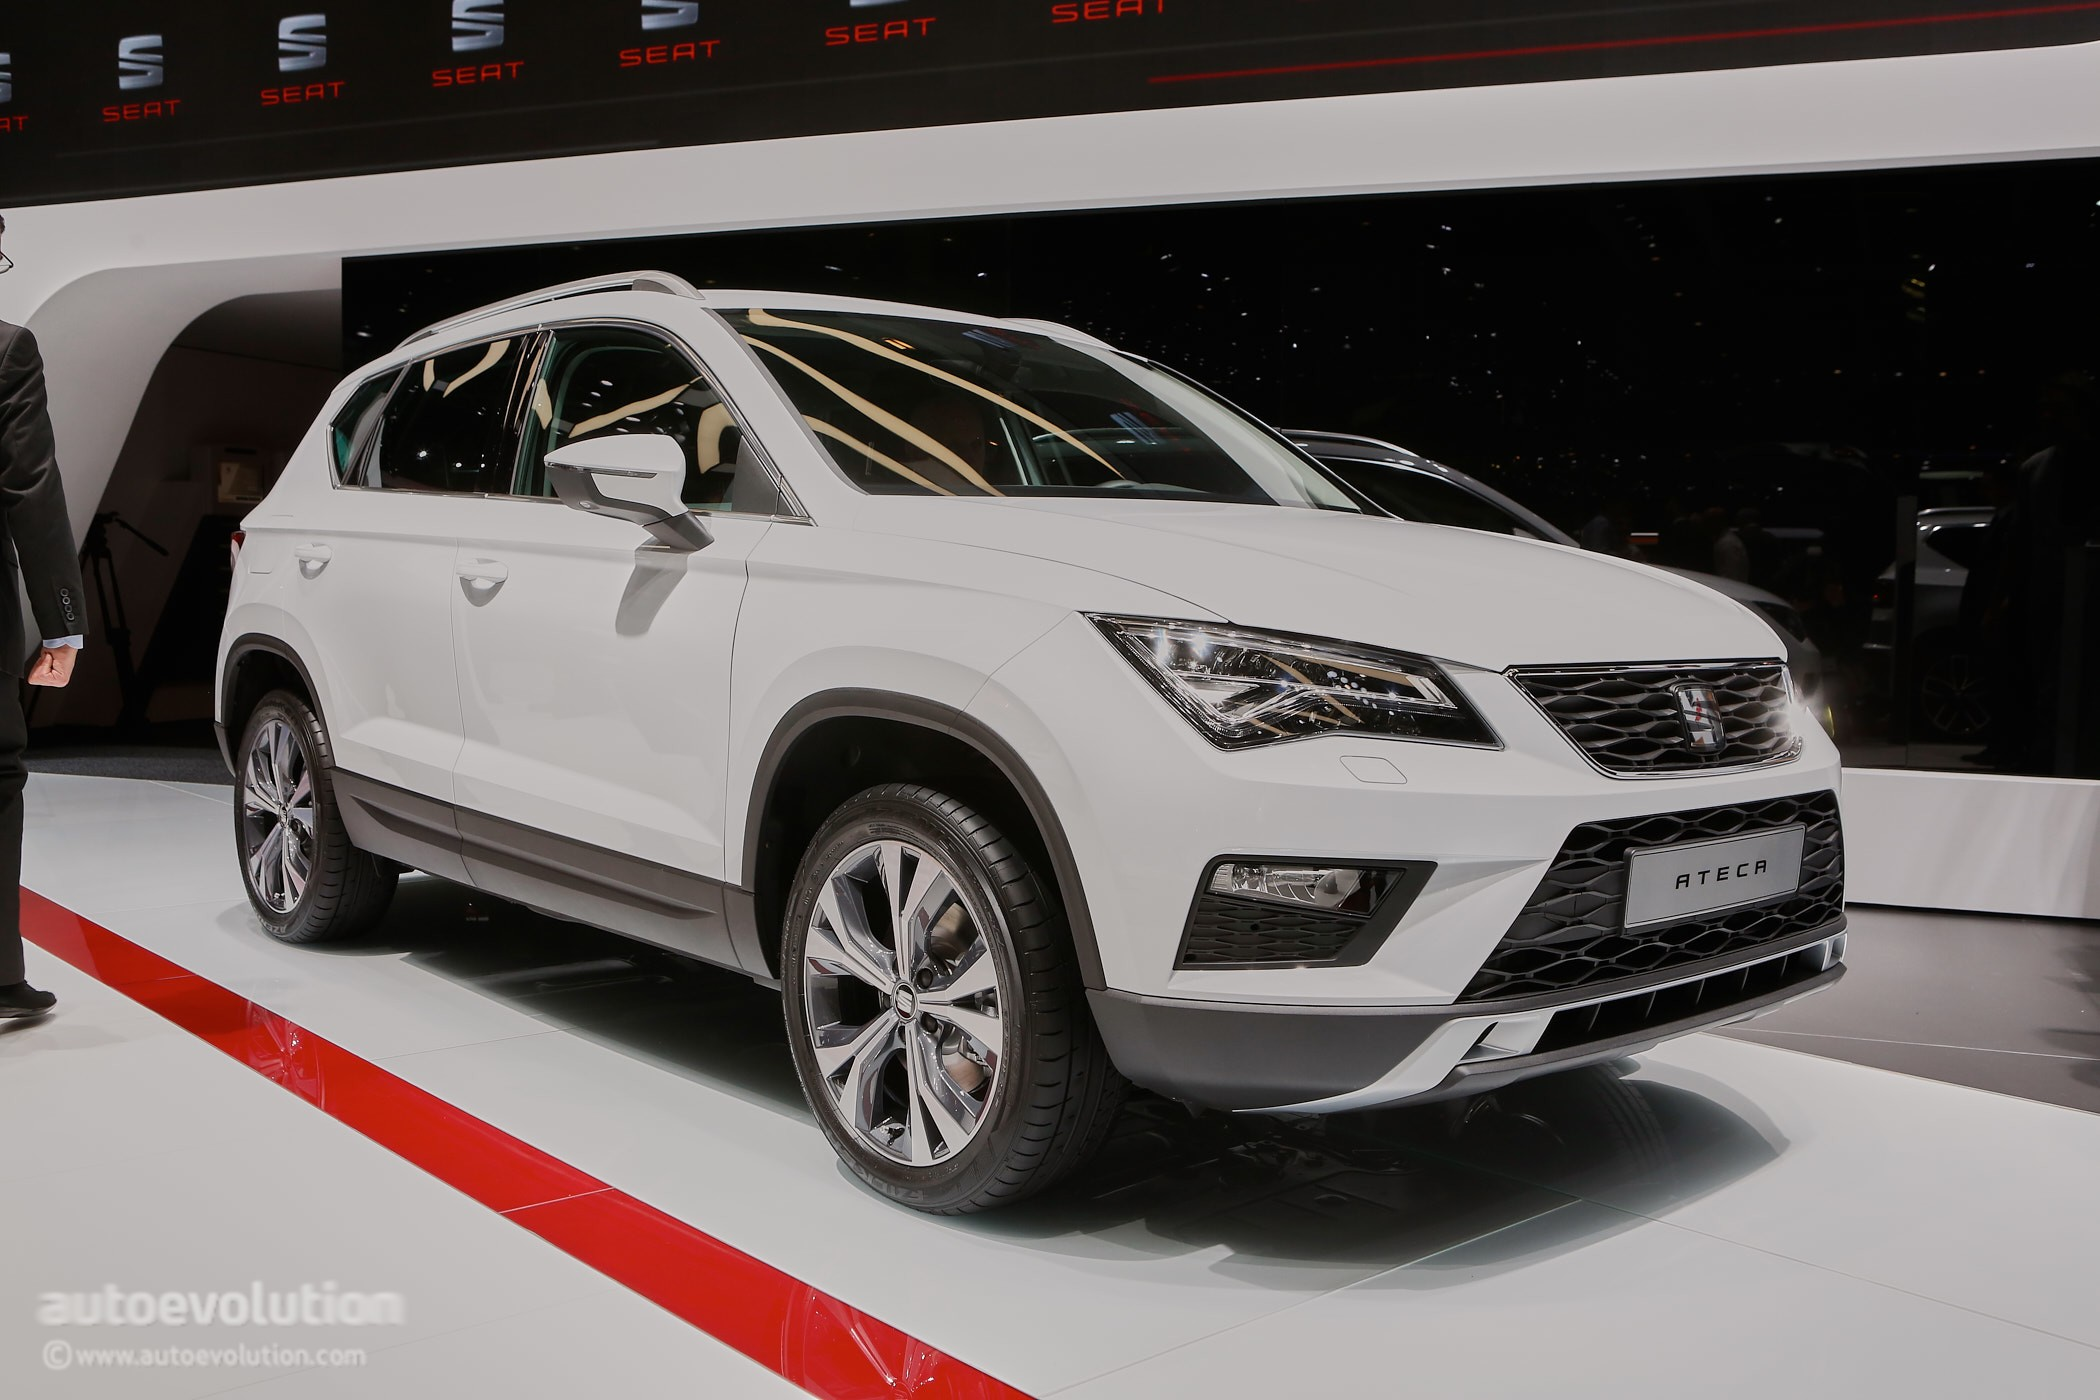 2016 seat ateca suv makes official debut at geneva autoevolution. Black Bedroom Furniture Sets. Home Design Ideas